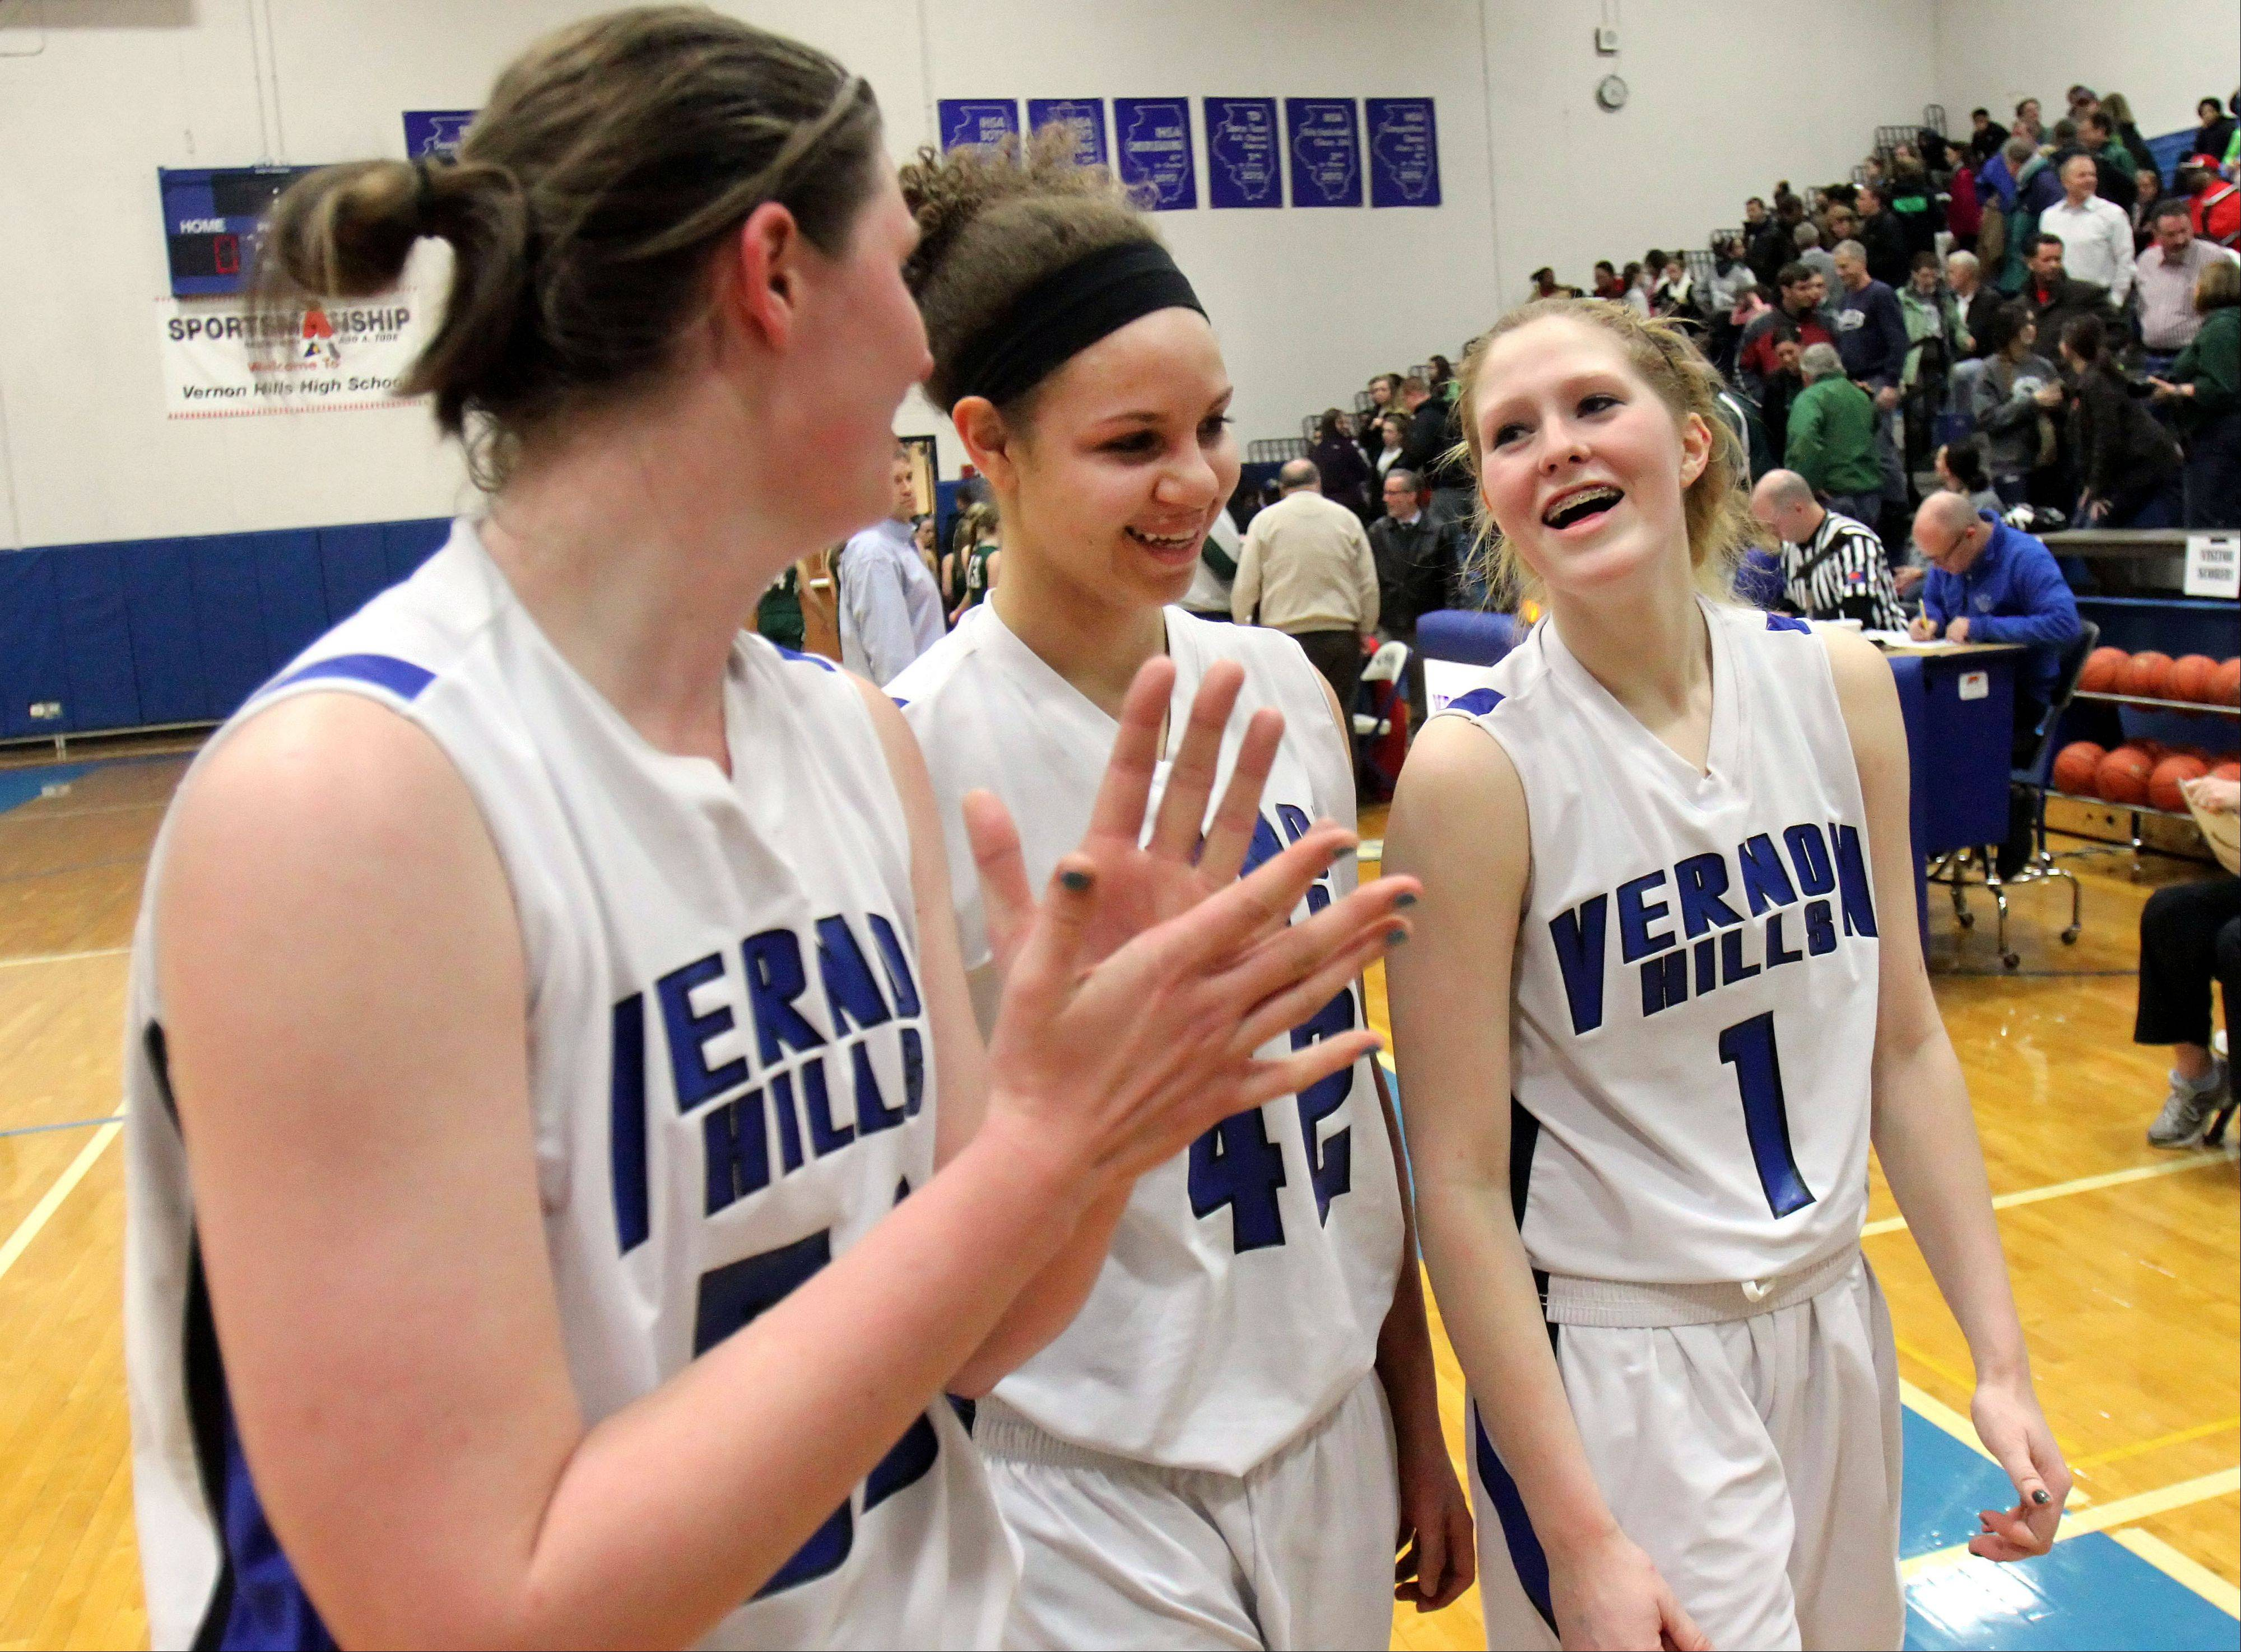 Vernon Hills players from left, Meri Bennett-Swanson, Lauren Webb and Sydney Smith are all smiles after beating Grayslake Central.